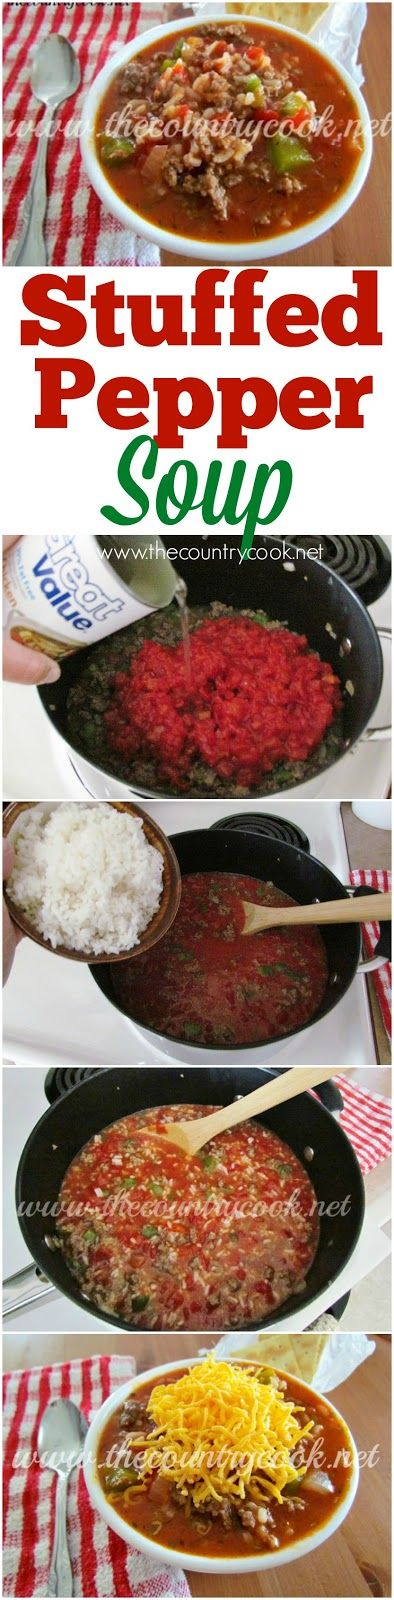 Stuffed Pepper Soup recipe from The Country Cook. Easy, delicious, southern, country, cooking